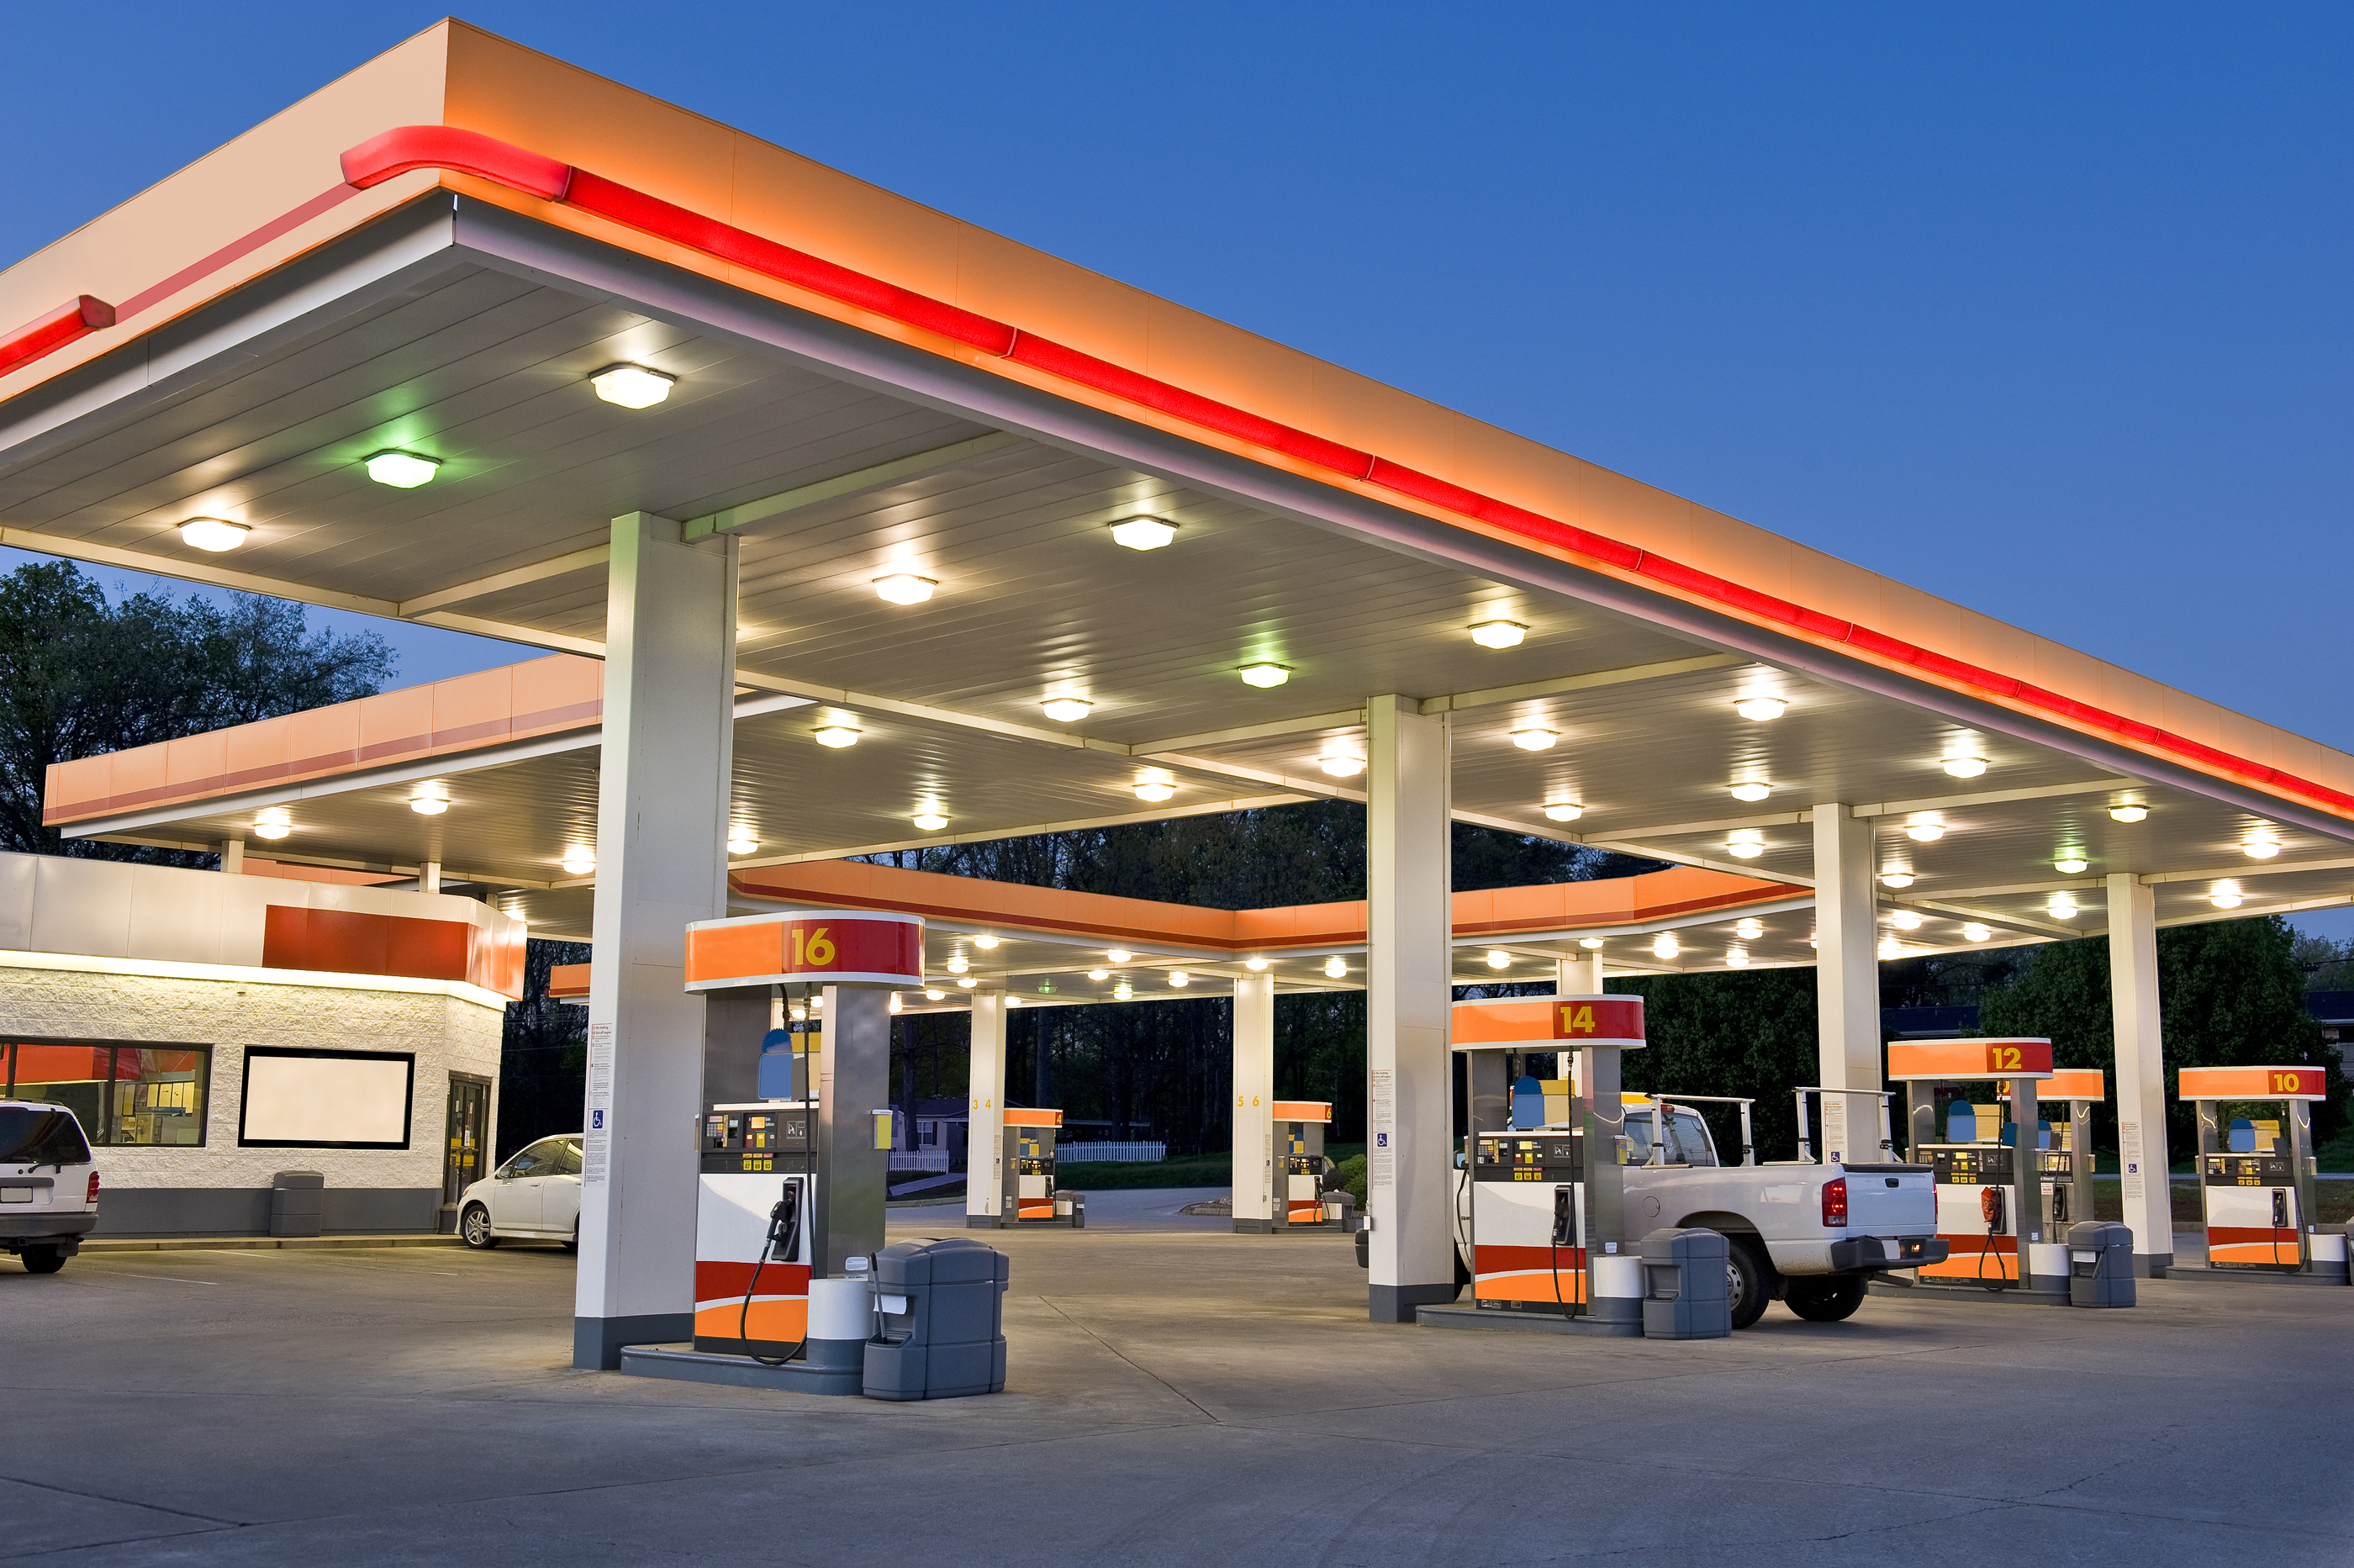 BETTER SOLUTIONS FOR YOUR PETROLEUM PAYMENT PROCESSING